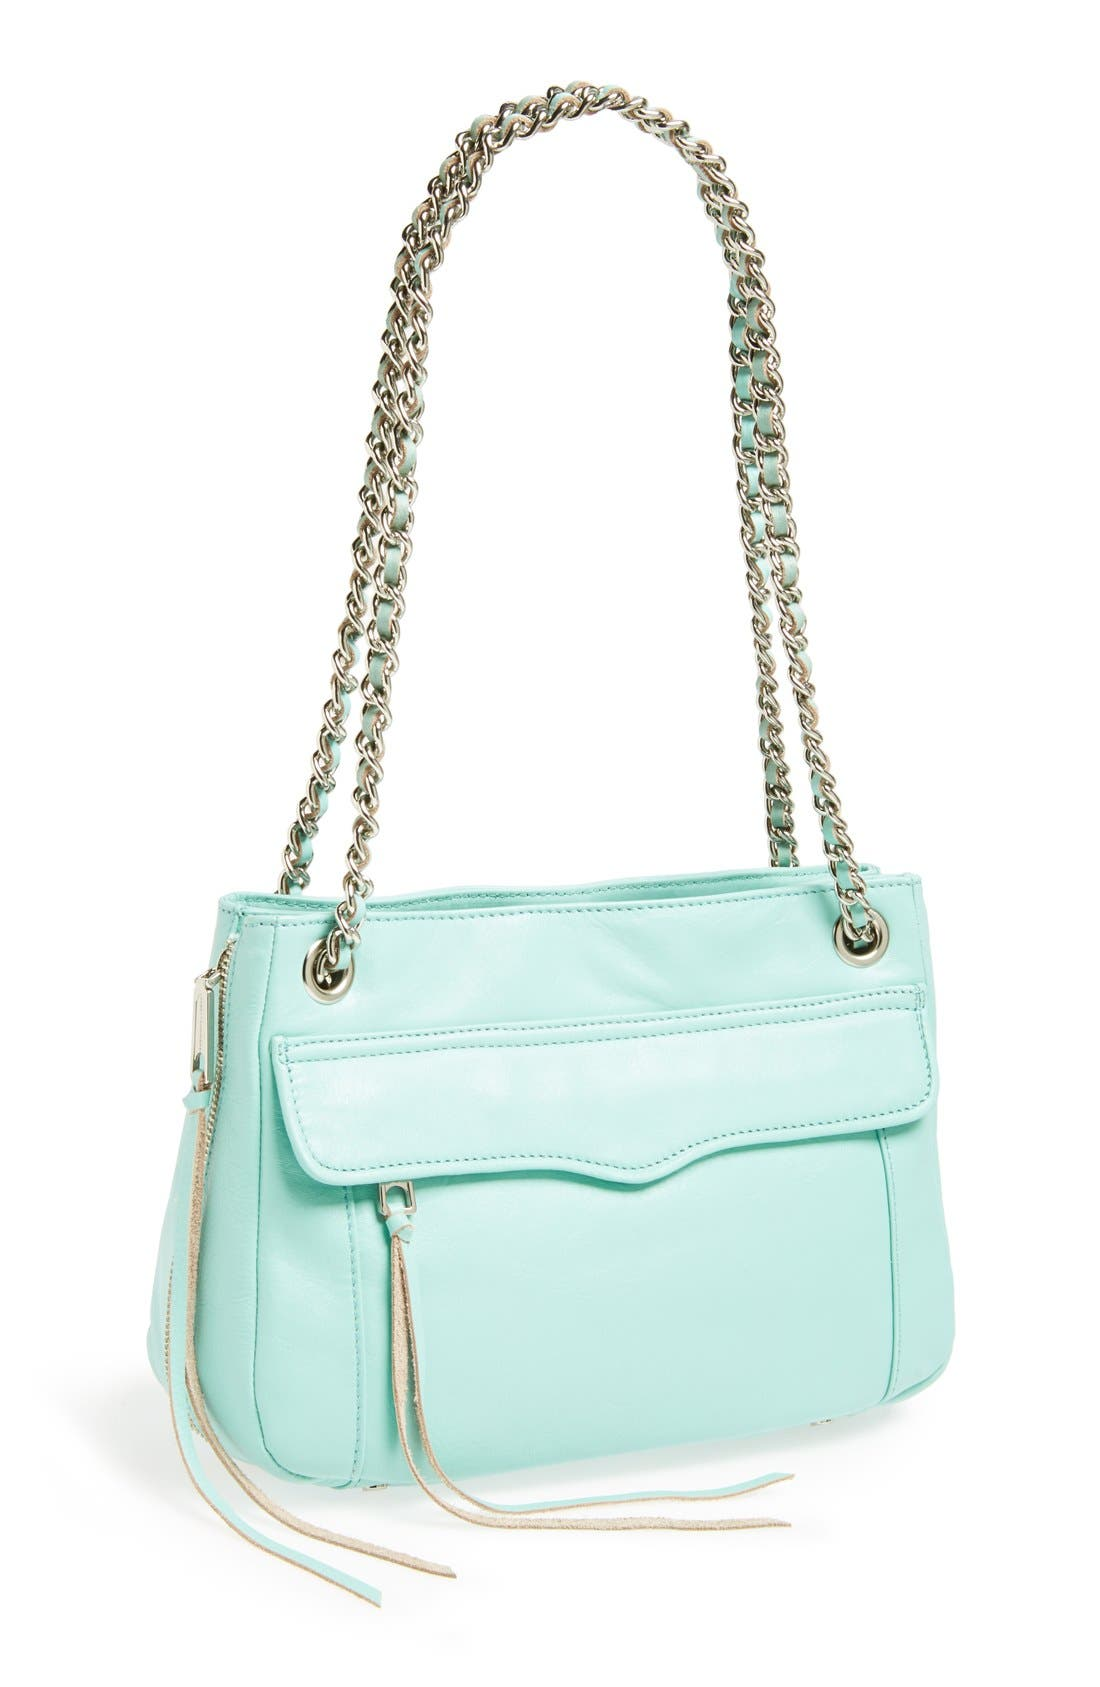 Alternate Image 1 Selected - Rebecca Minkoff 'Swing' Convertible Crossbody Bag